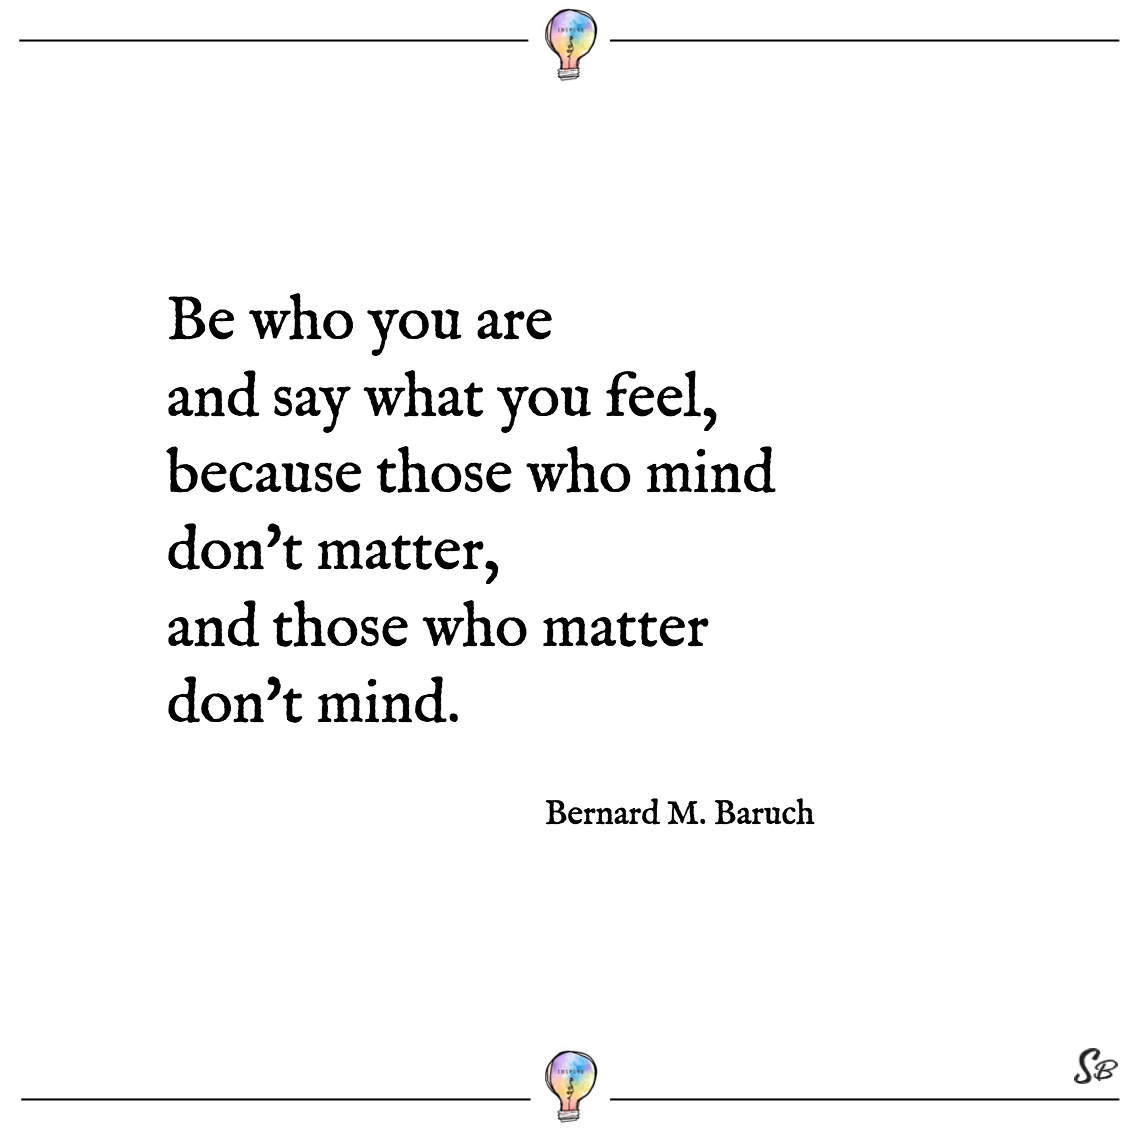 Be who you are and say what you feel, because those who mind don't matter, and those who matter don't mind. bernard m. baruch